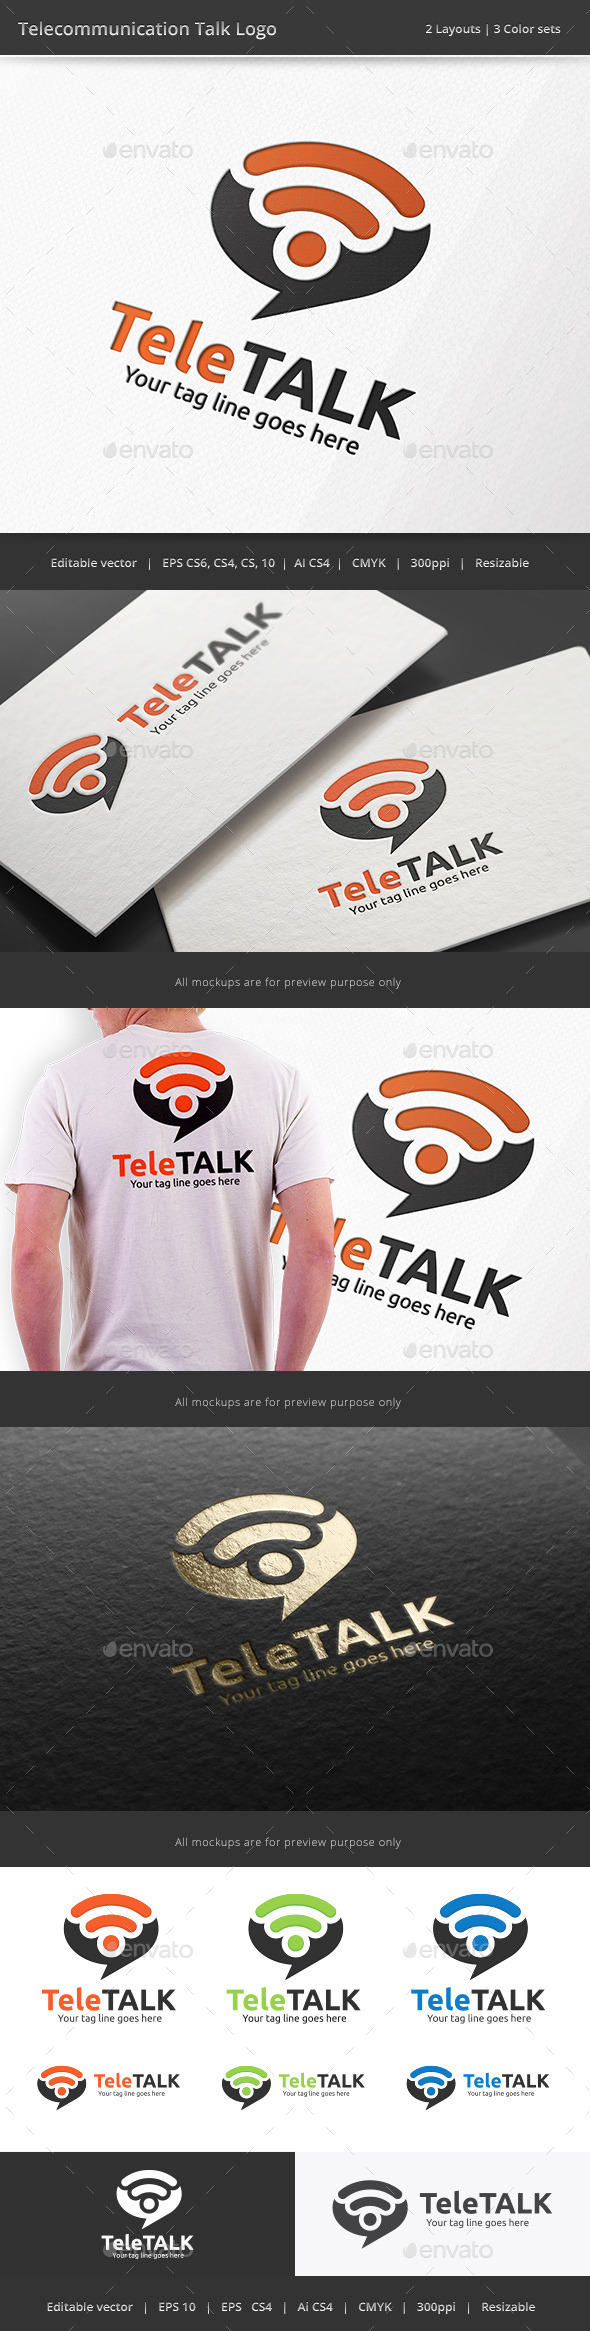 Telecommunication Talk Logo - Symbols Logo Templates